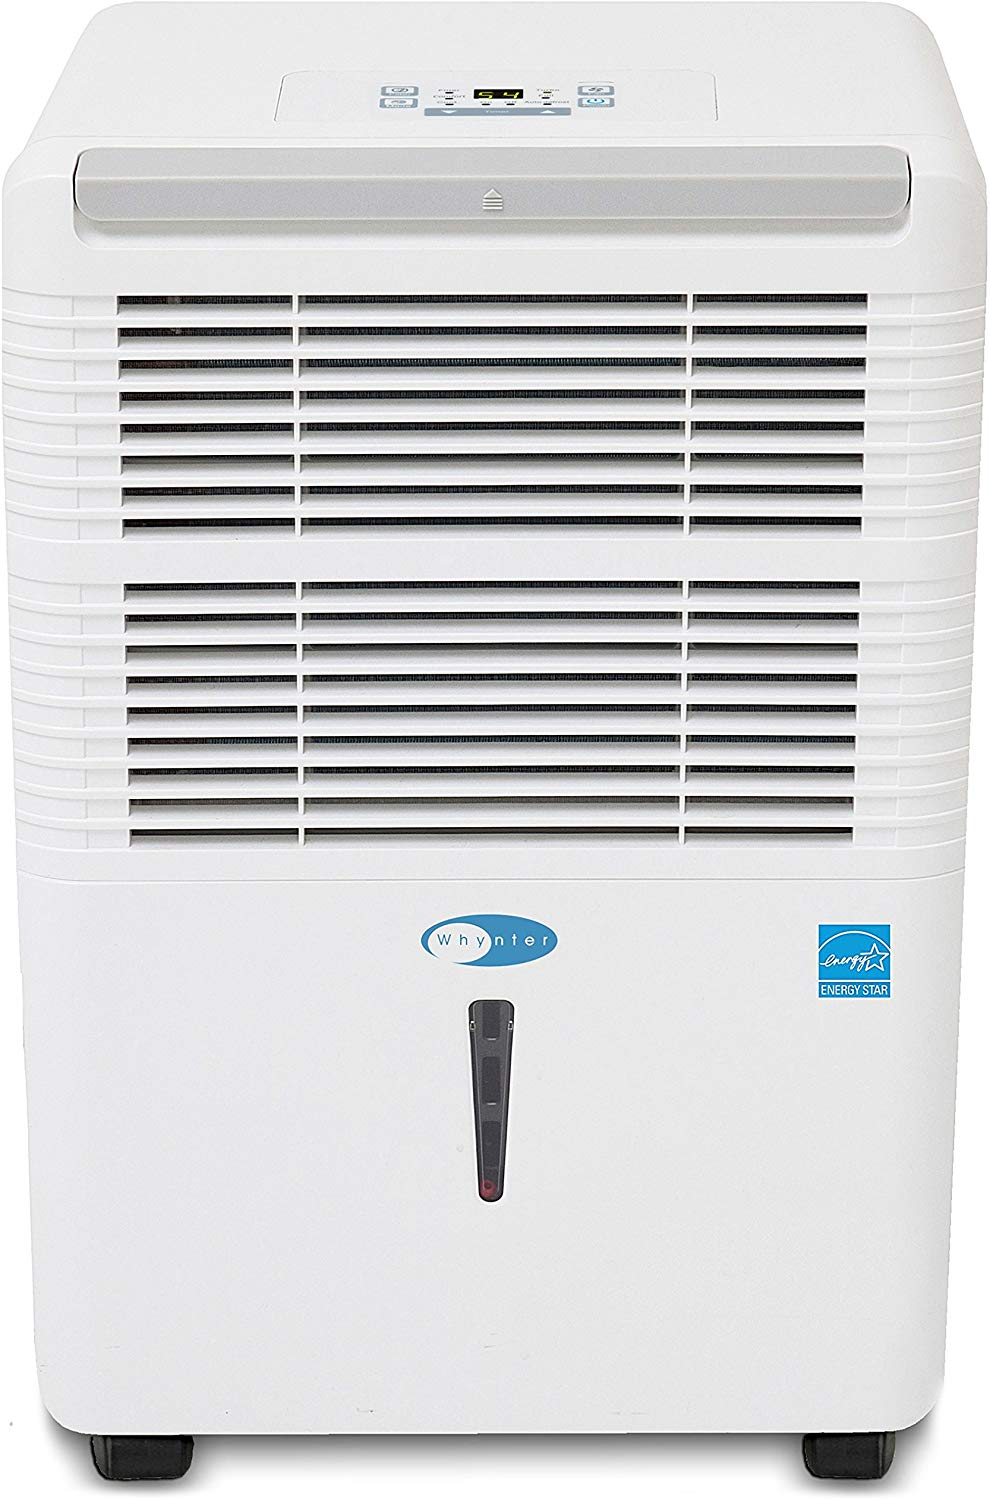 Whynter RPD-421EW Energy Star Portable Dehumidifier